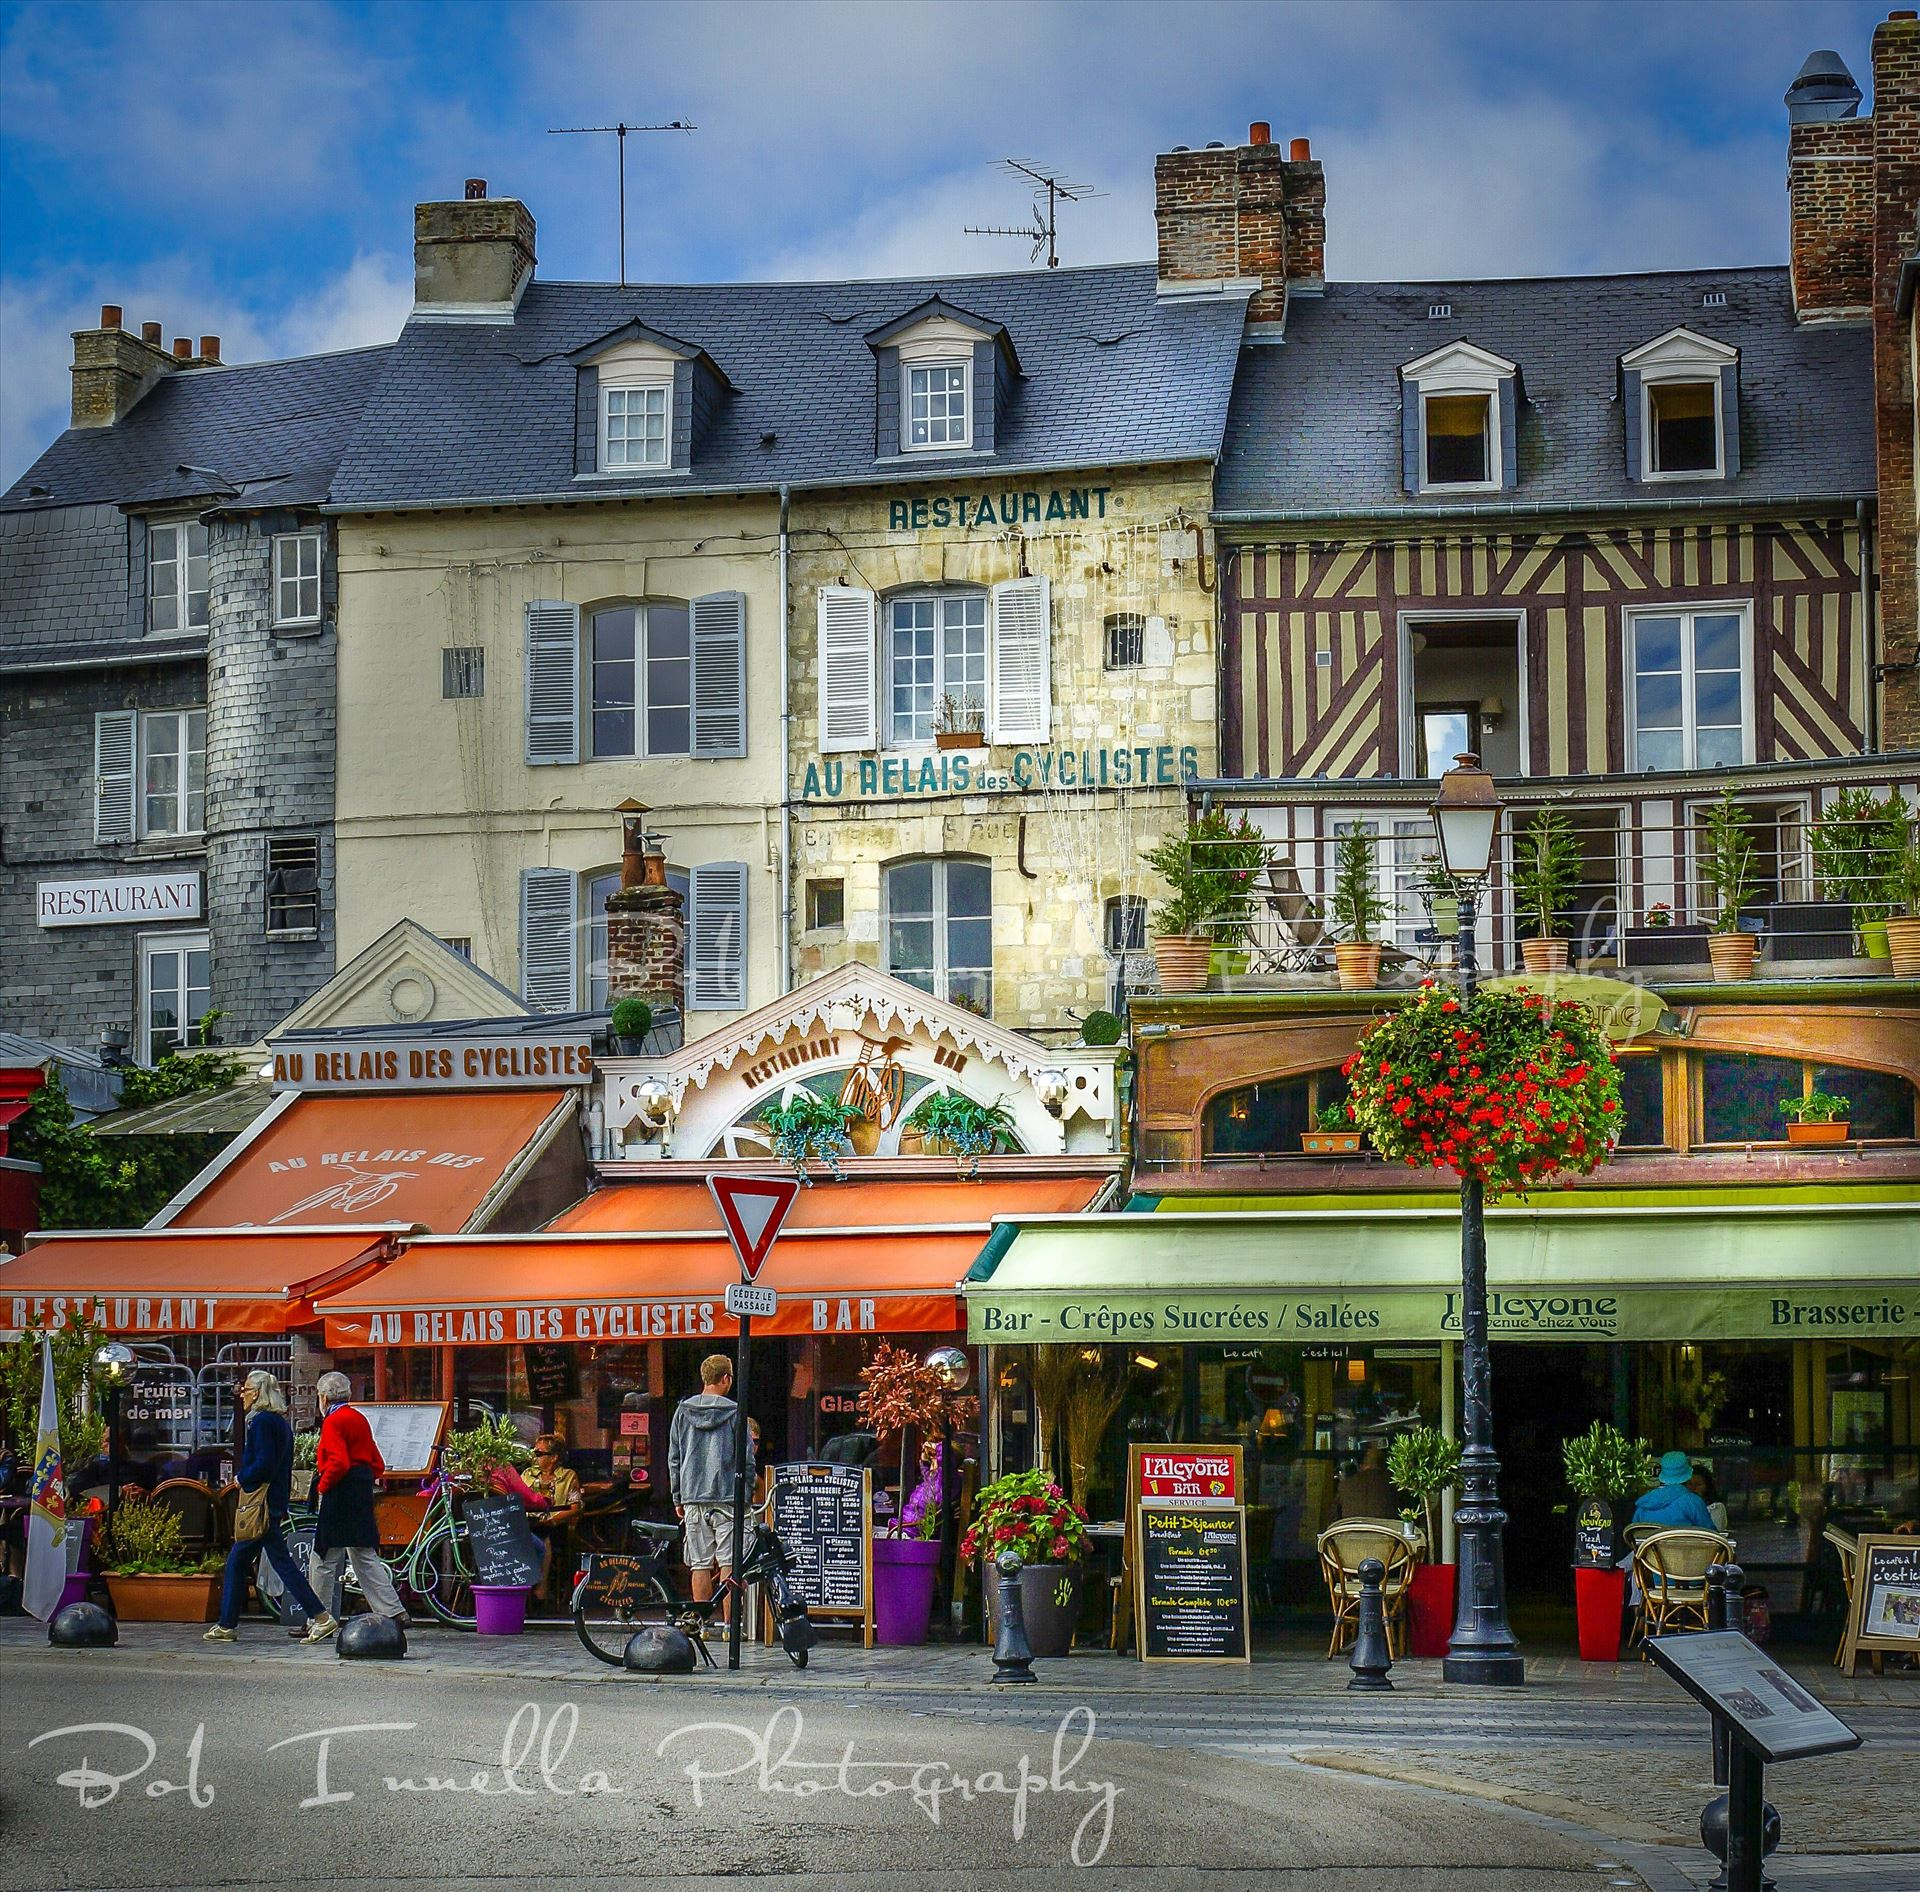 Merchants On City Street In Honfleur, France -  by Buckmaster